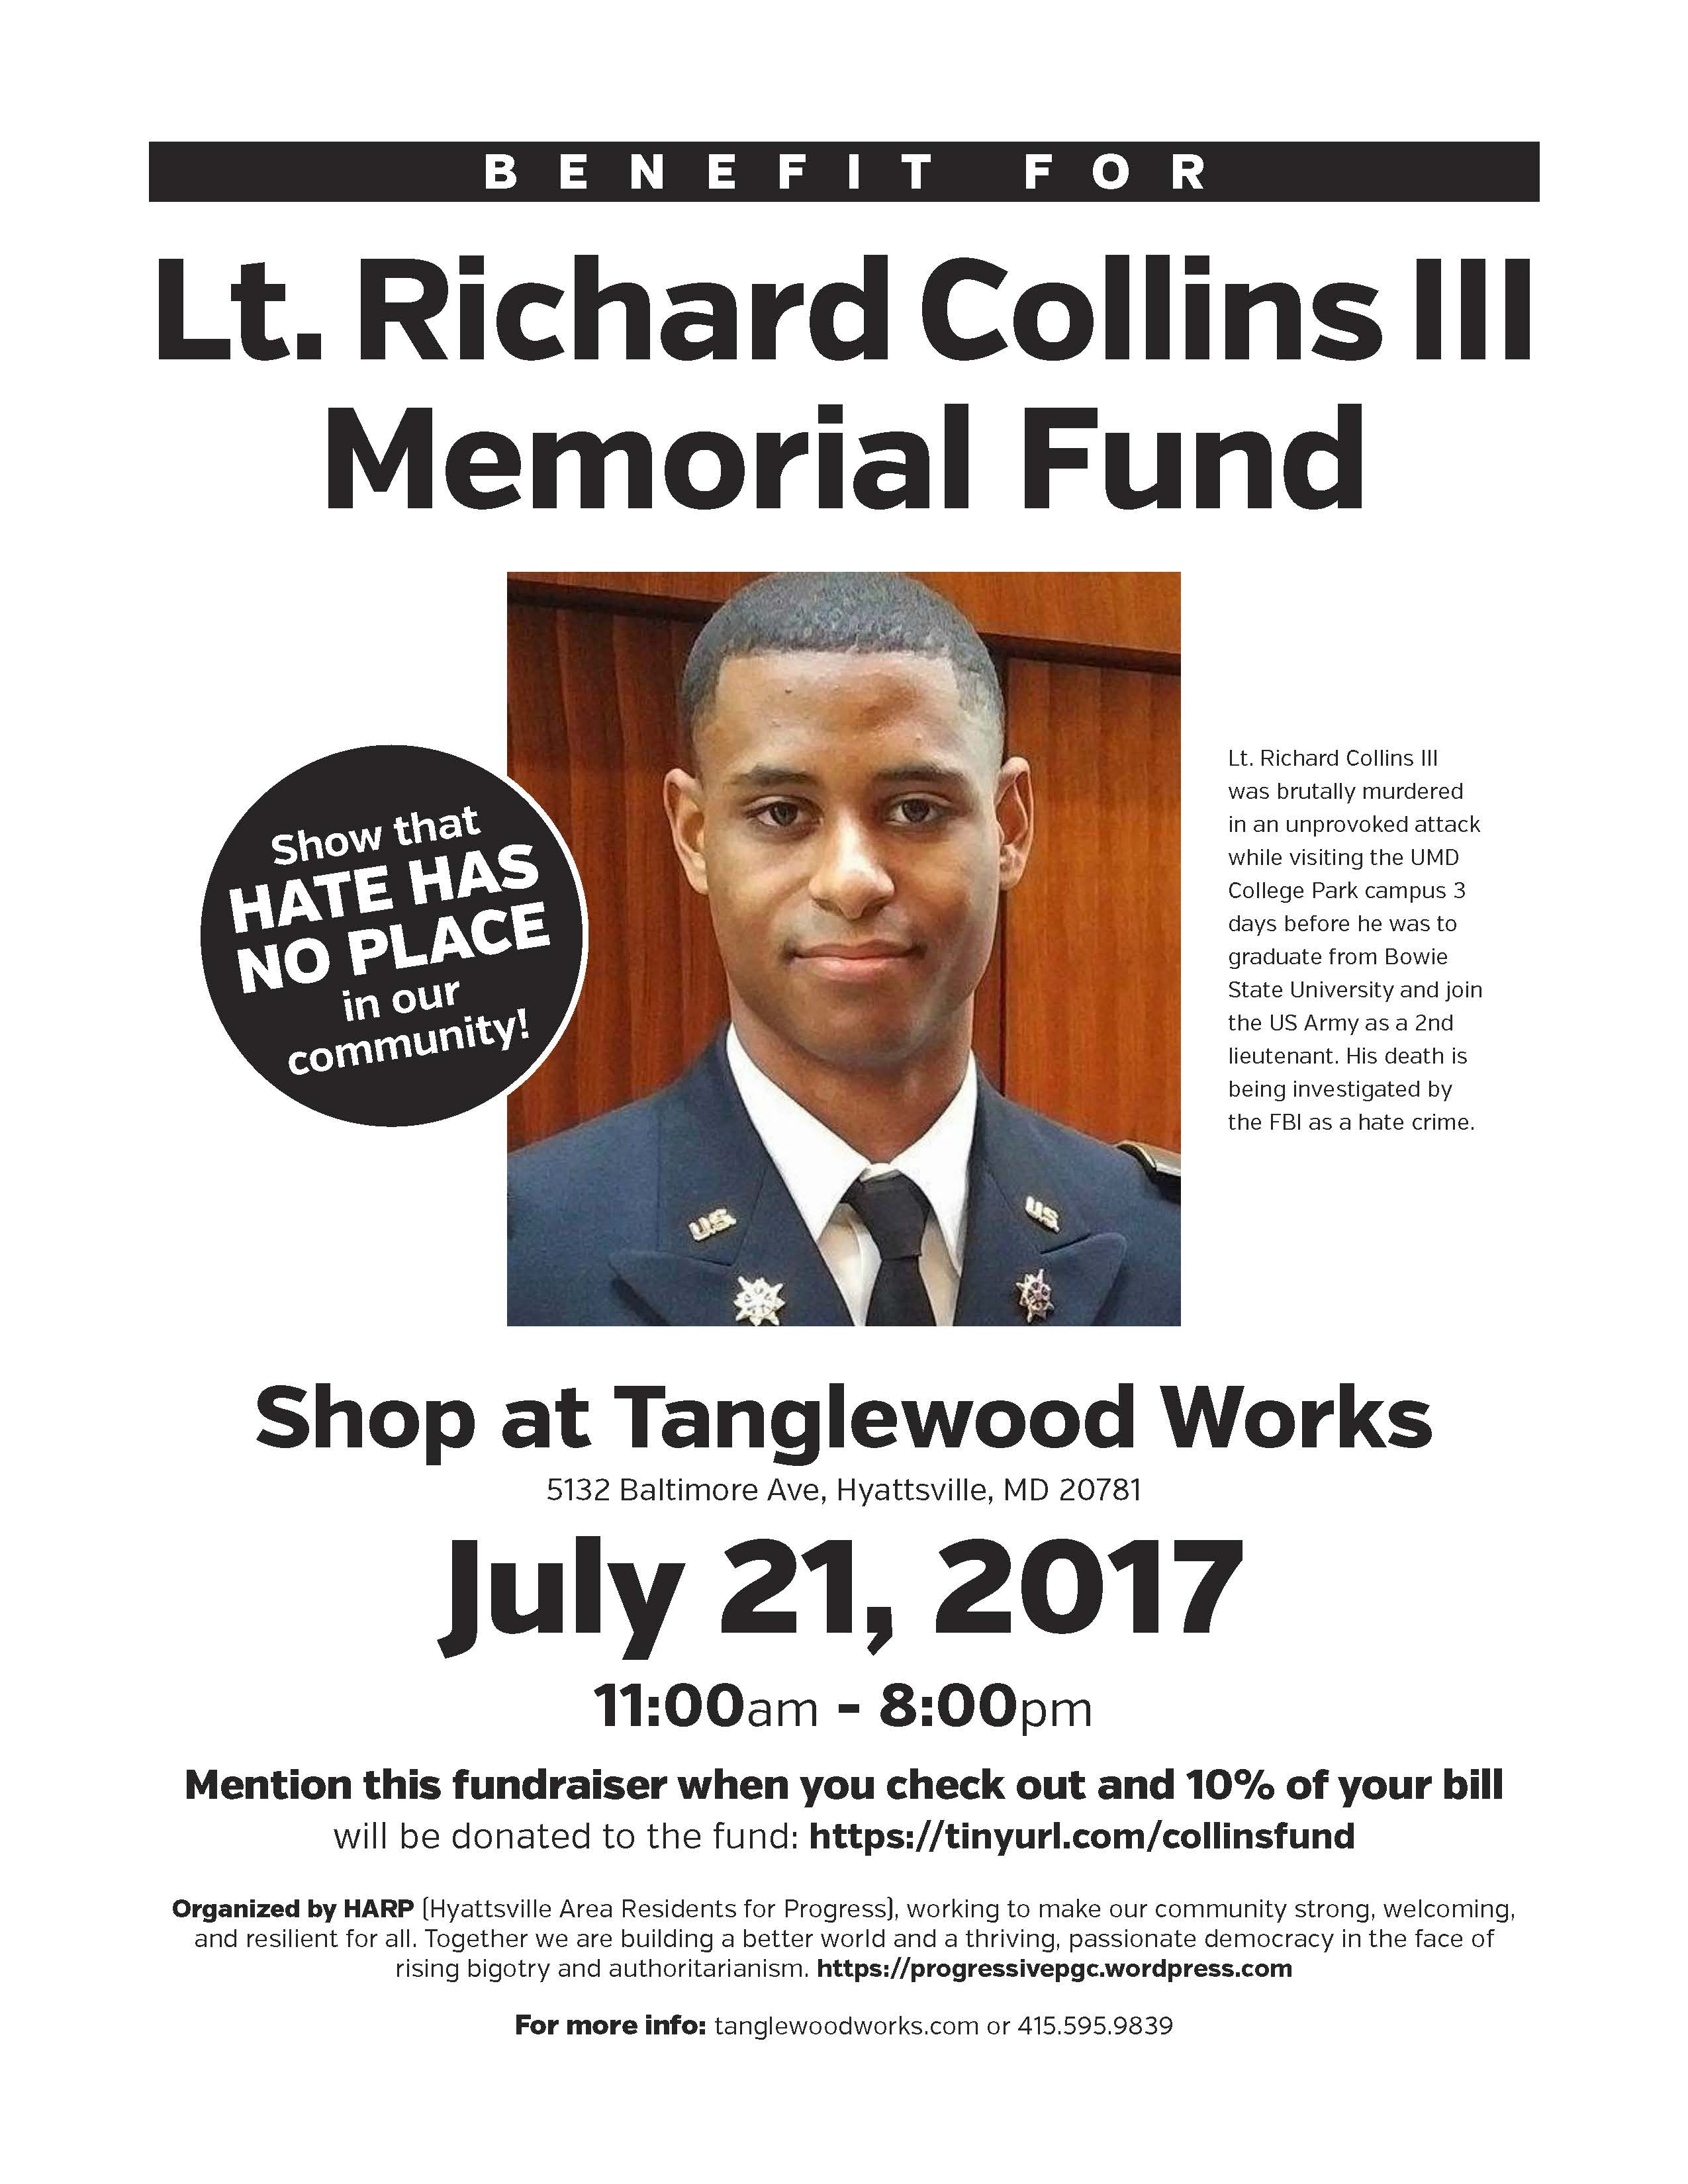 fundraiser for richard collins iii at tanglewood works